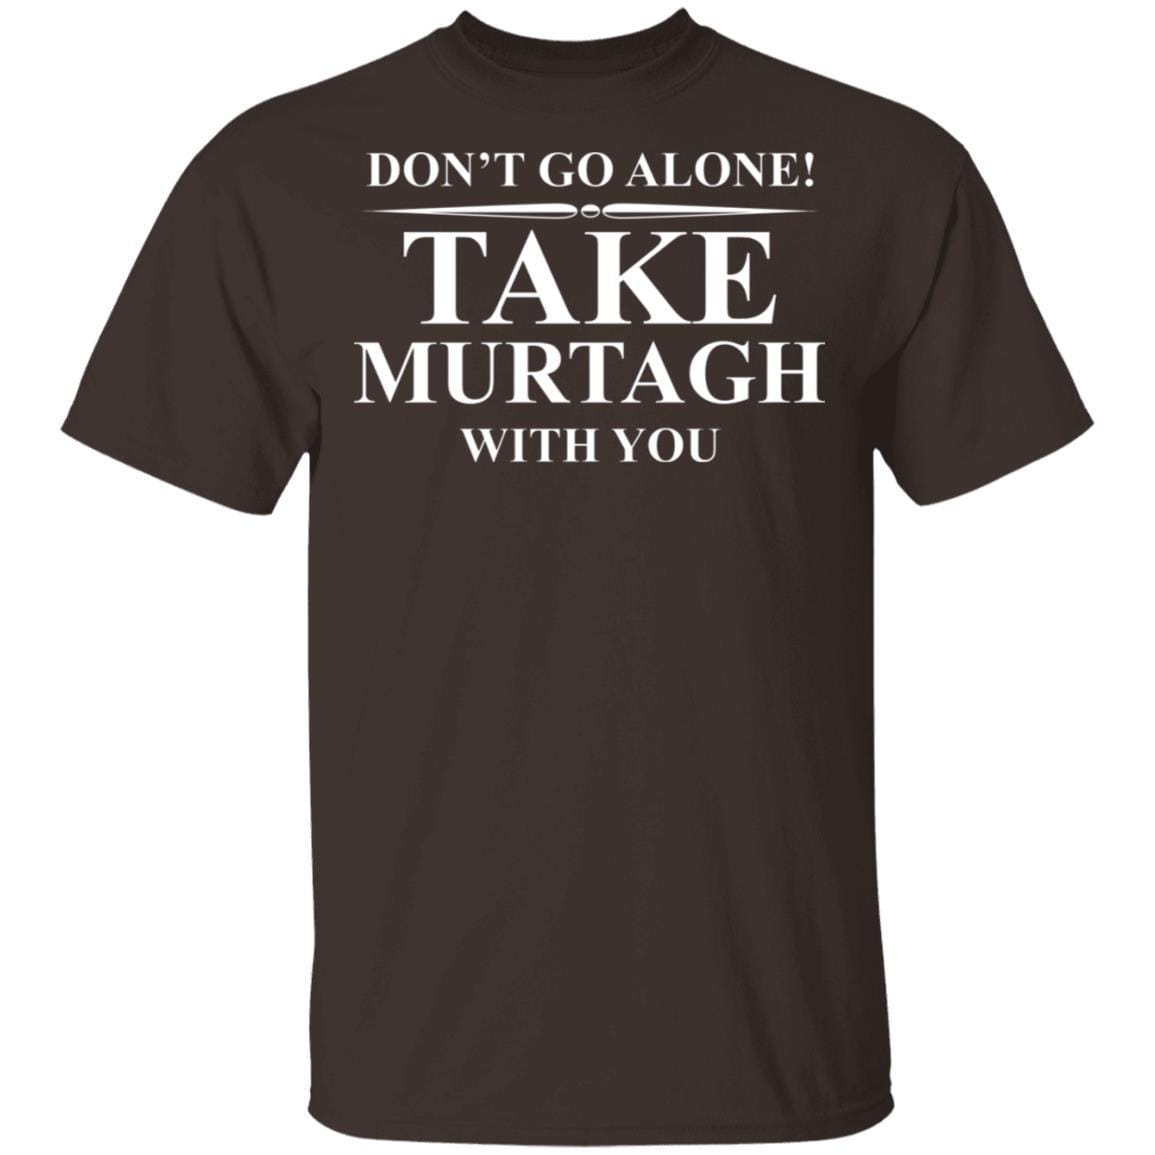 Don't Go Alone Take Murtagh With You T-Shirts, Hoodies 1049-9956-92796760-48152 - Tee Ript